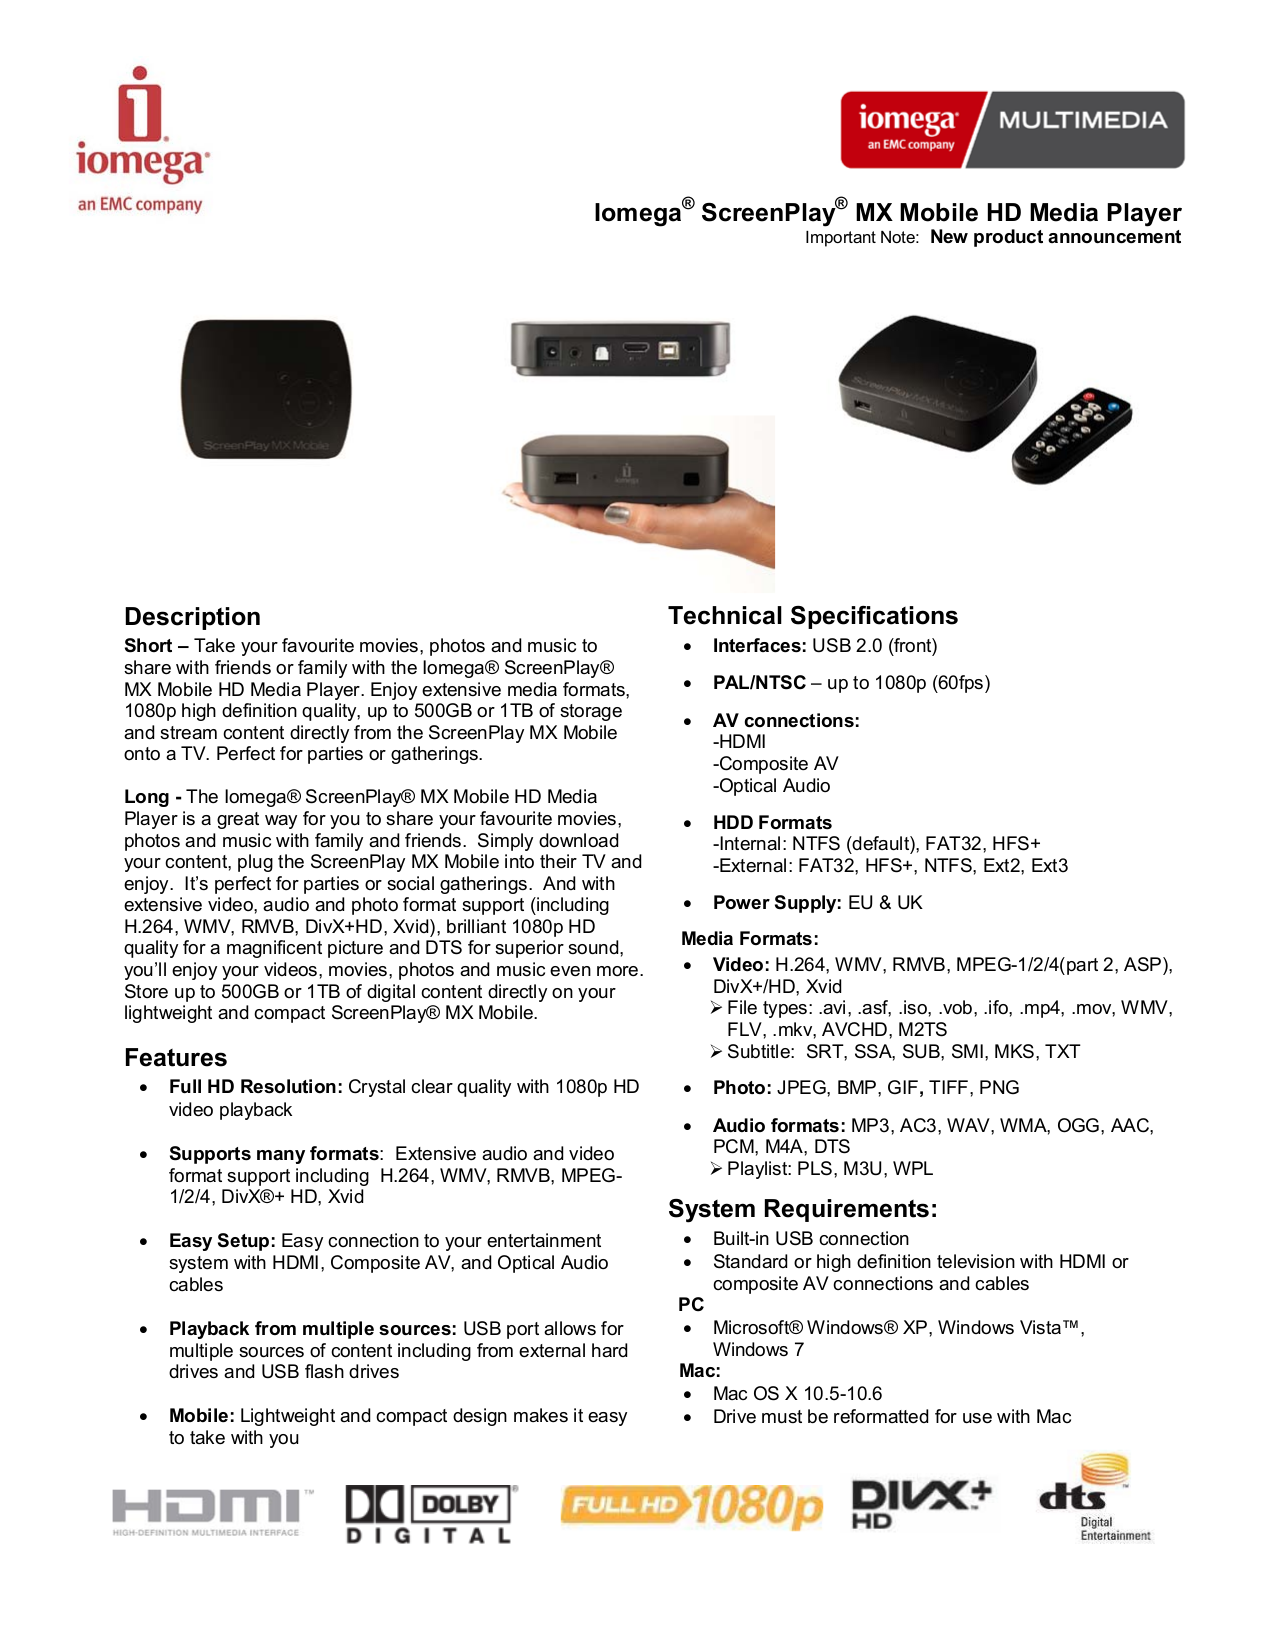 Slingbox Hd Pro Manual Pdf